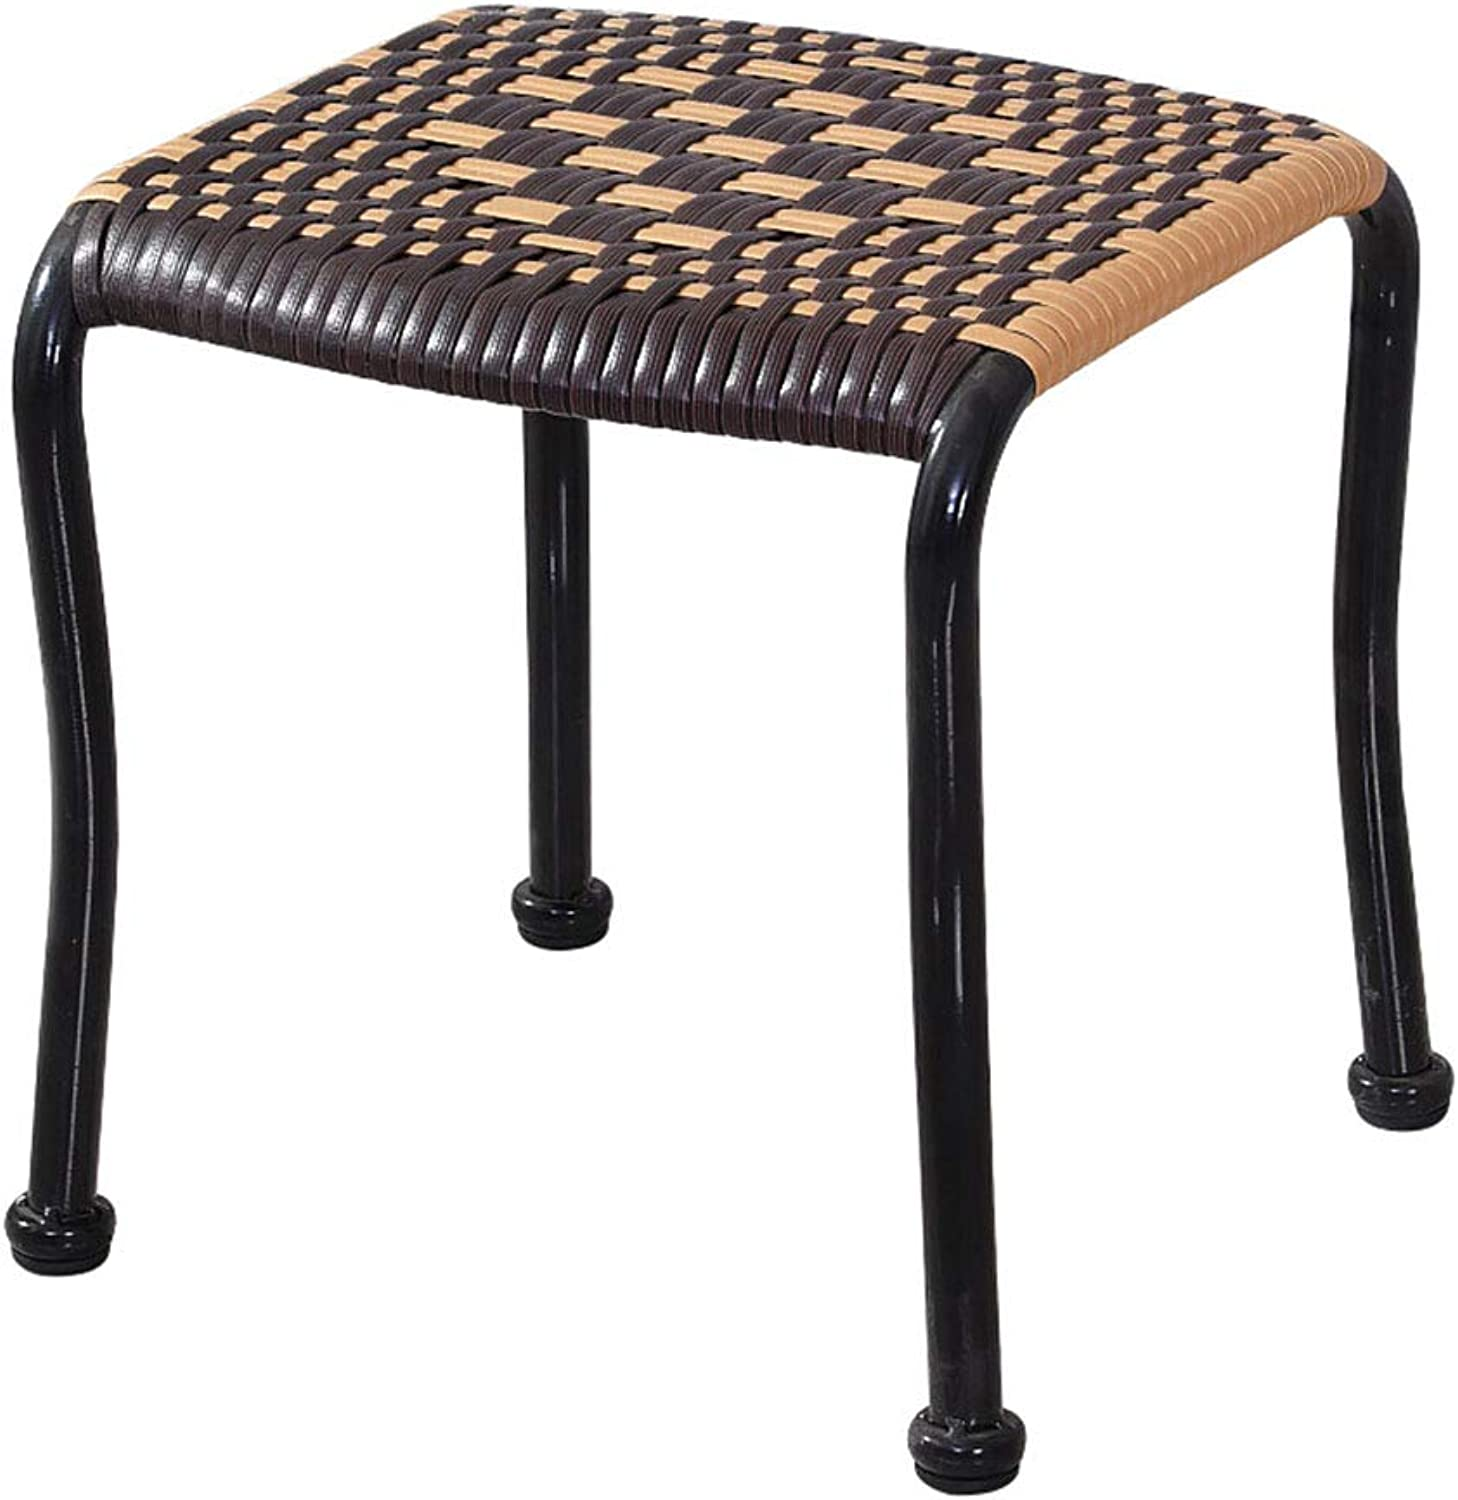 Rattan Stool Plastic Stool Small seat Bench shoes Bench Home Square Stool Creative Adult Dining Chair Stool (Size   30CM)